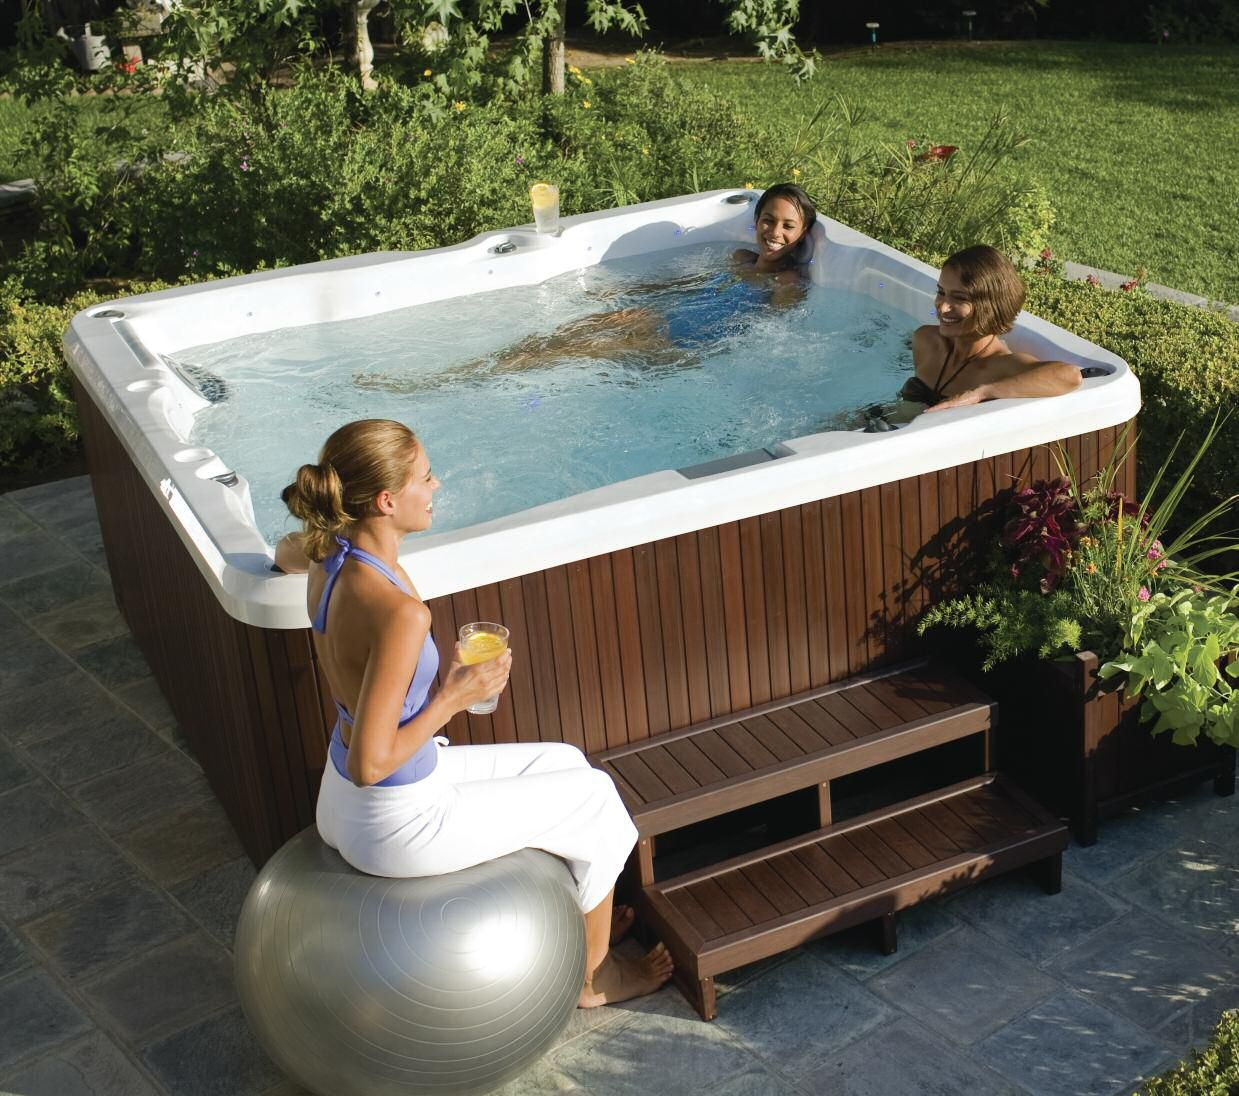 Relax - Enjoy a glass or two with friends | Jacuzzi Brand Hot Tubs ...